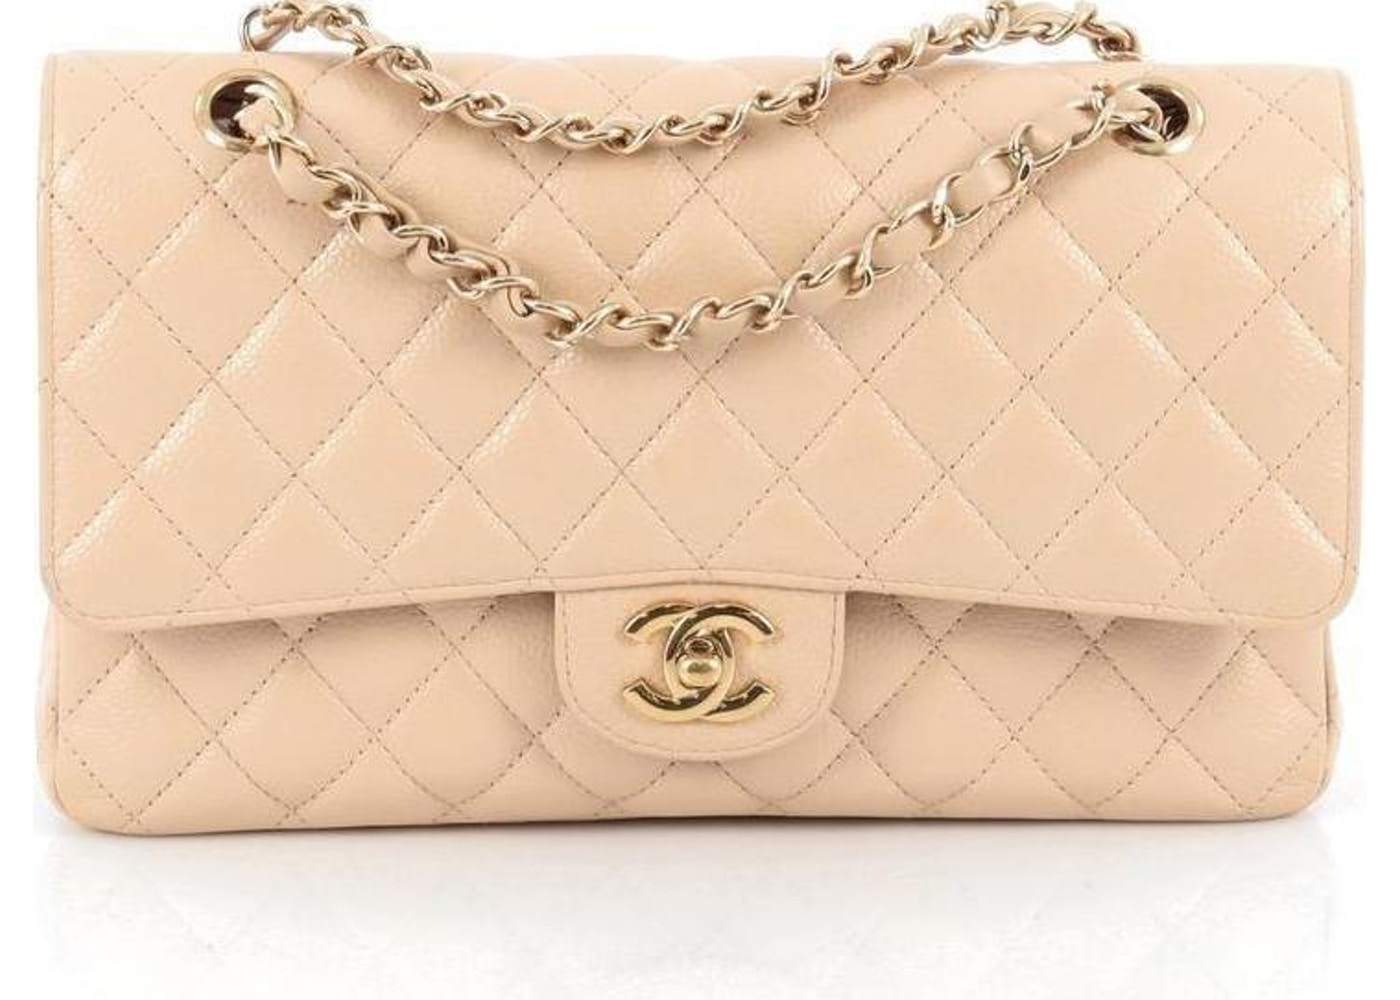 476708a8c8e7 Chanel Classic Double Flap Diamond Quilted Medium Nude